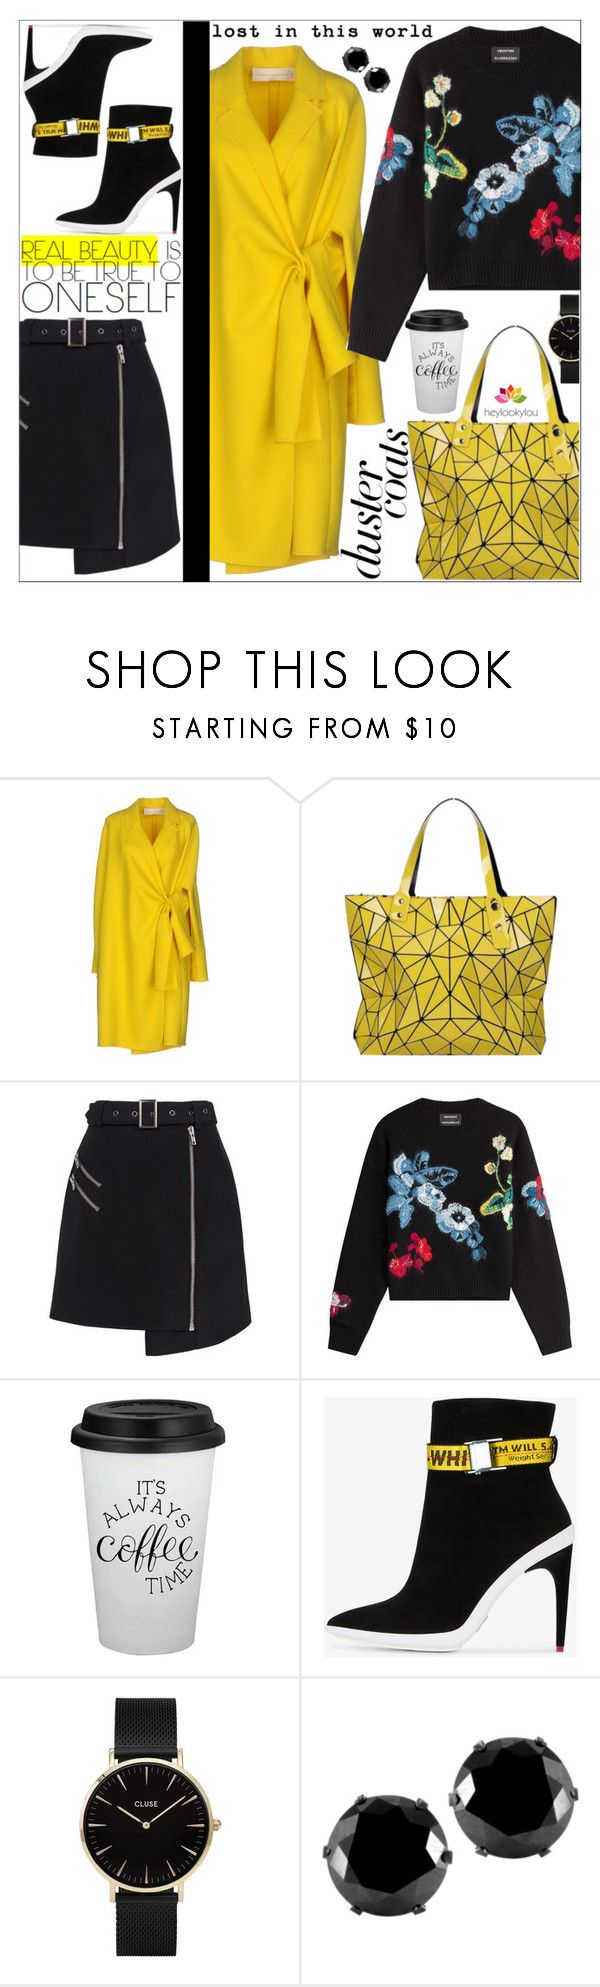 """""""Long Layers: Duster Coat No.2"""" by dani-elan ❤ liked on Polyvore featuring Victoria Beckham, Bao Bao by Issey Miyake, Cameo, Anthony Vaccarello, Off-White, CLUSE, West Coast Jewelry and LOOKY"""